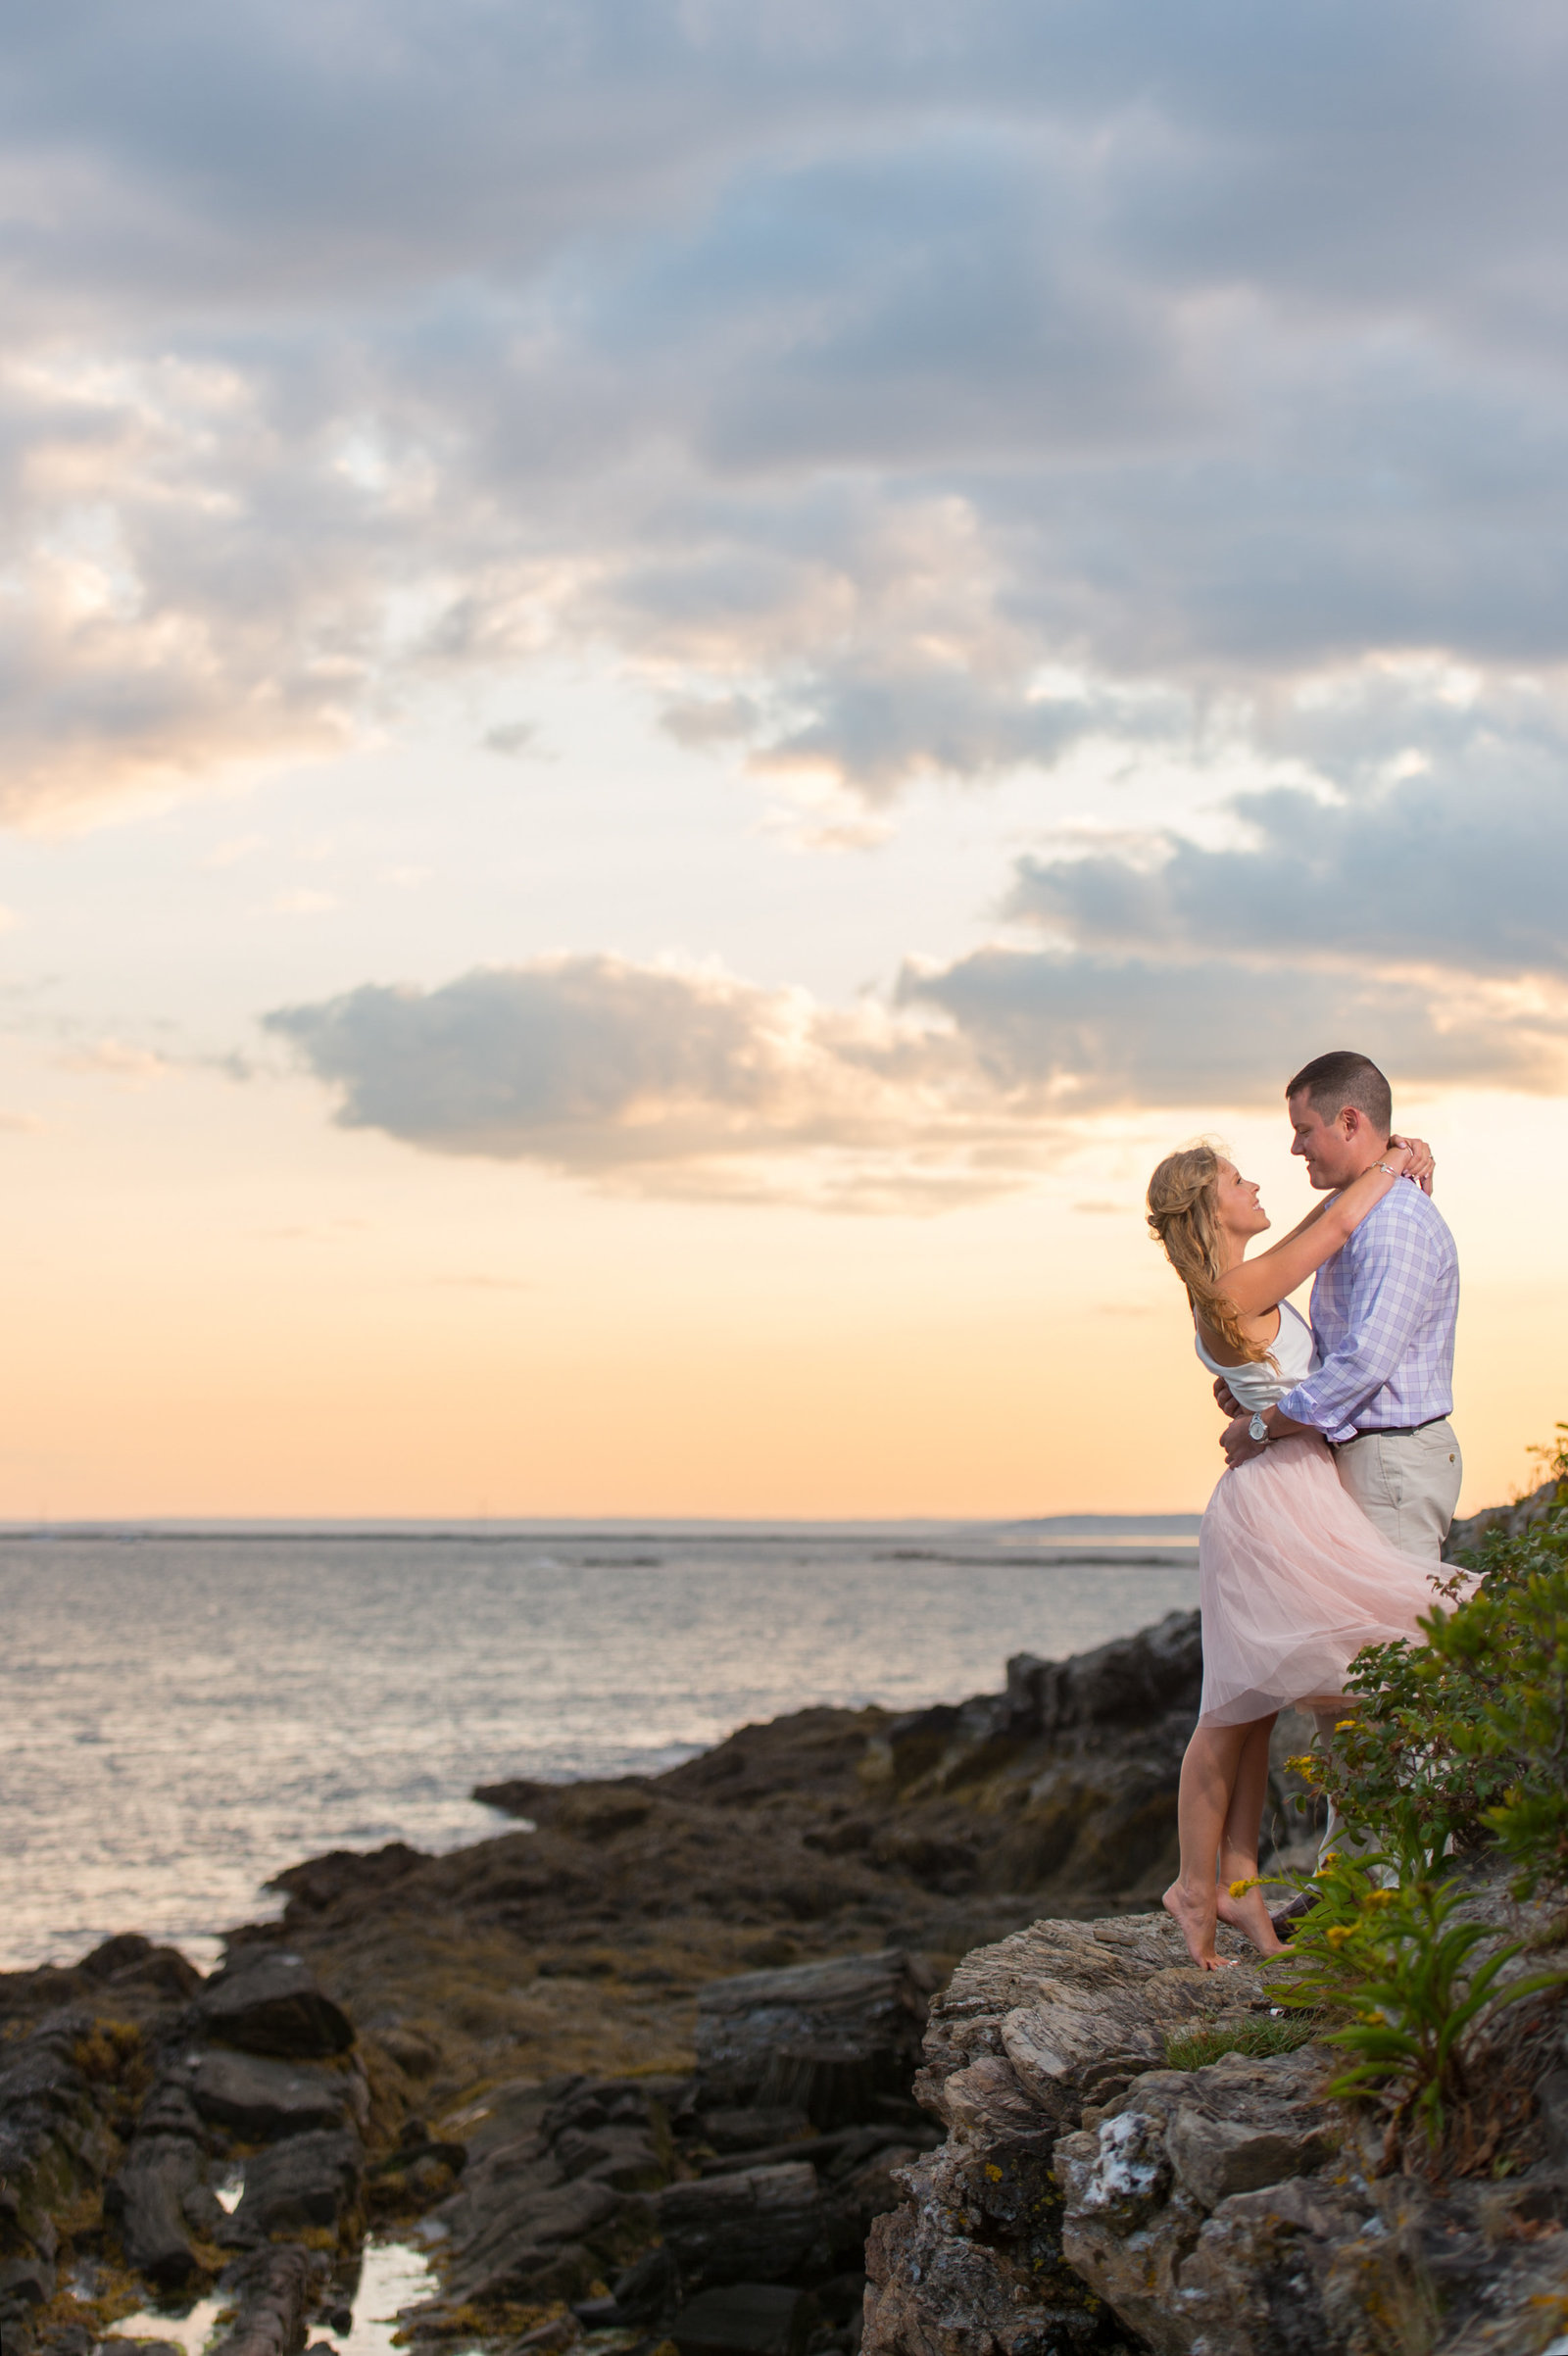 Maine Wedding Photographers, Costa Rica Wedding Photographer, Two Adventurous Souls-10